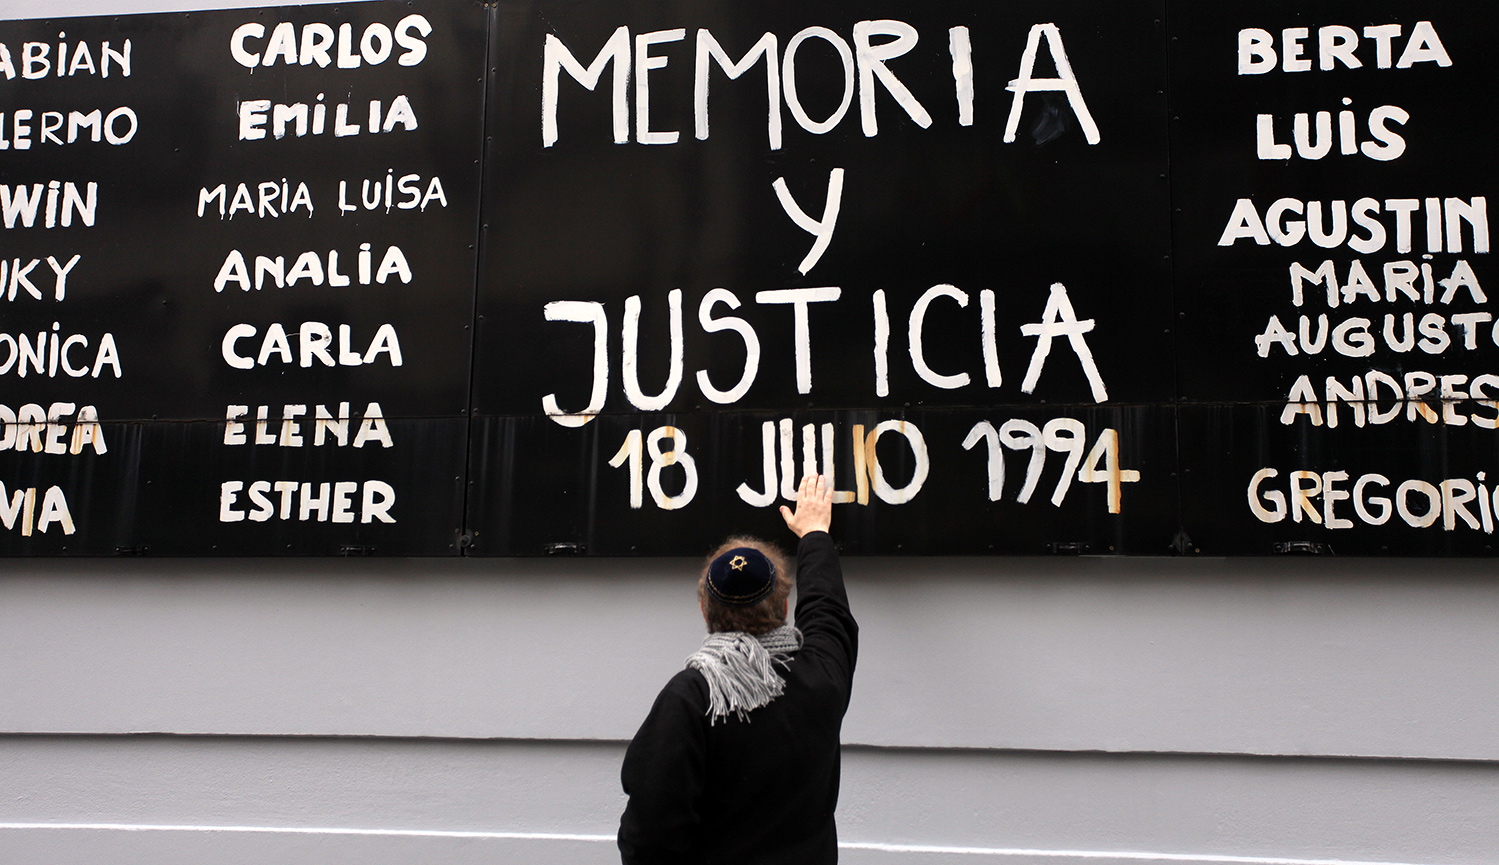 An AMIA memorial in July 2019 in Buenos Aires, Argentina. Carol Smiljan/NurPhoto via Getty Images.